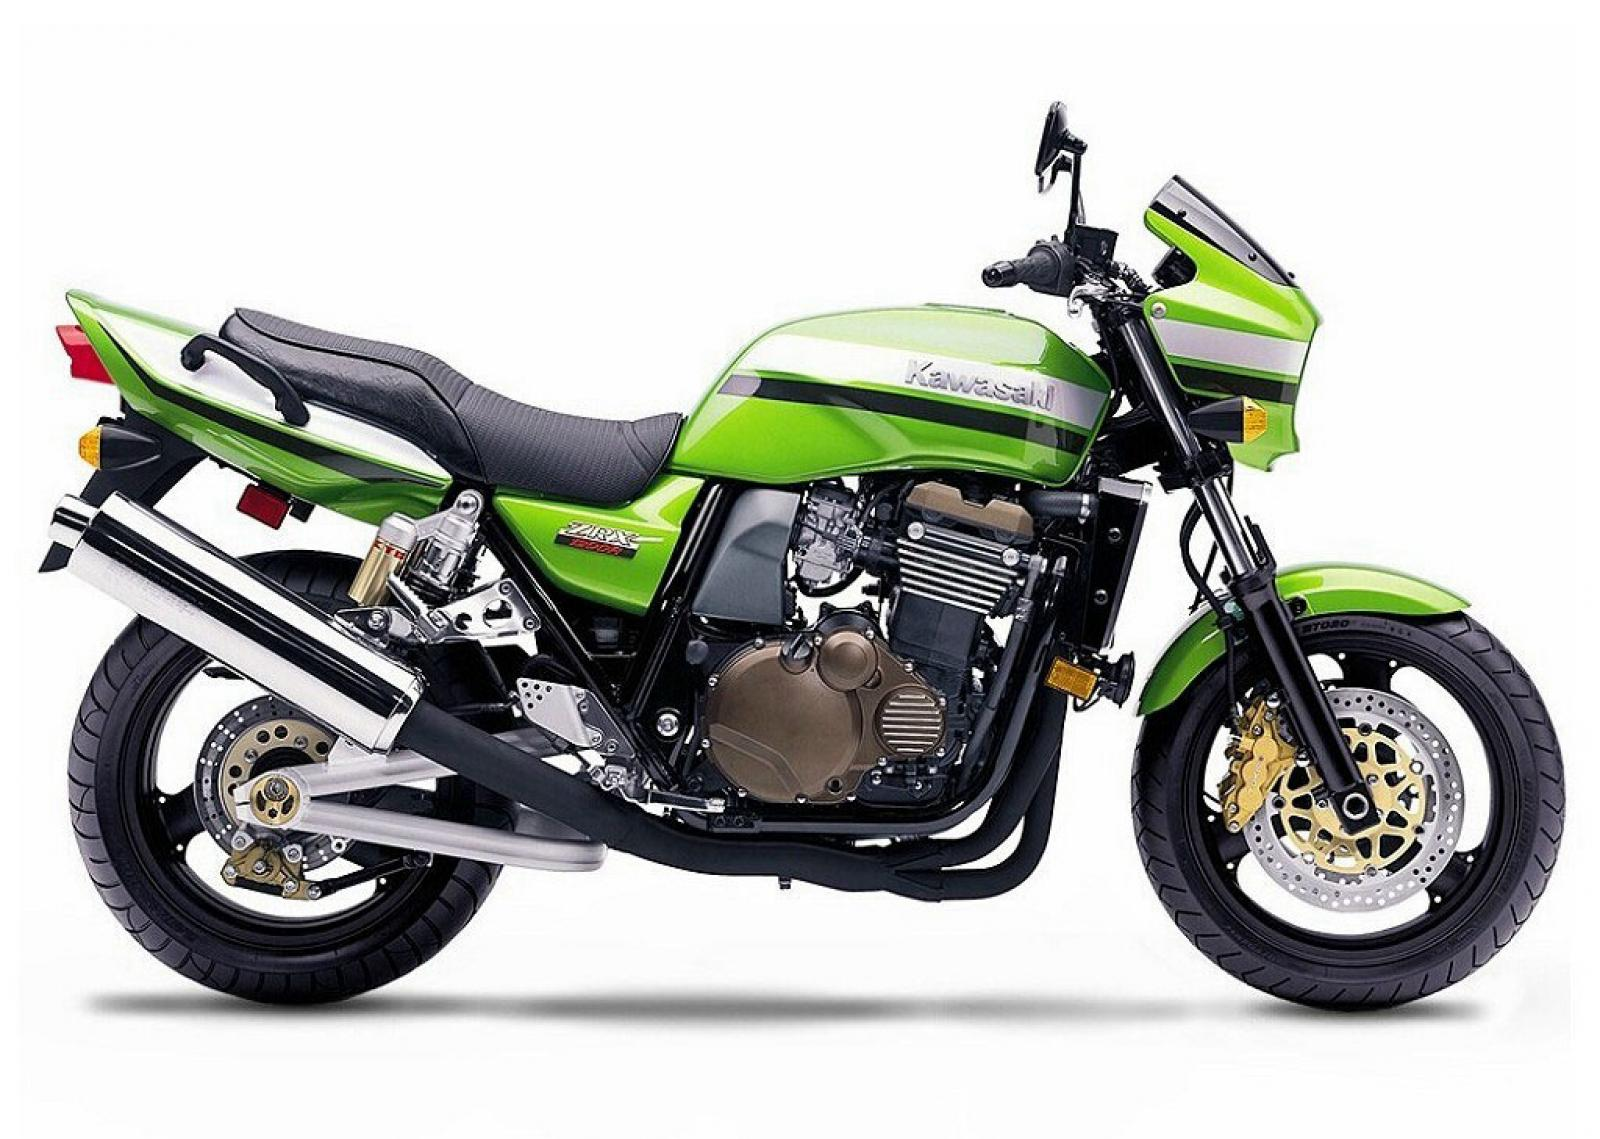 Kawasaki Zrx 1200 Pics Specs And List Of Seriess By Year